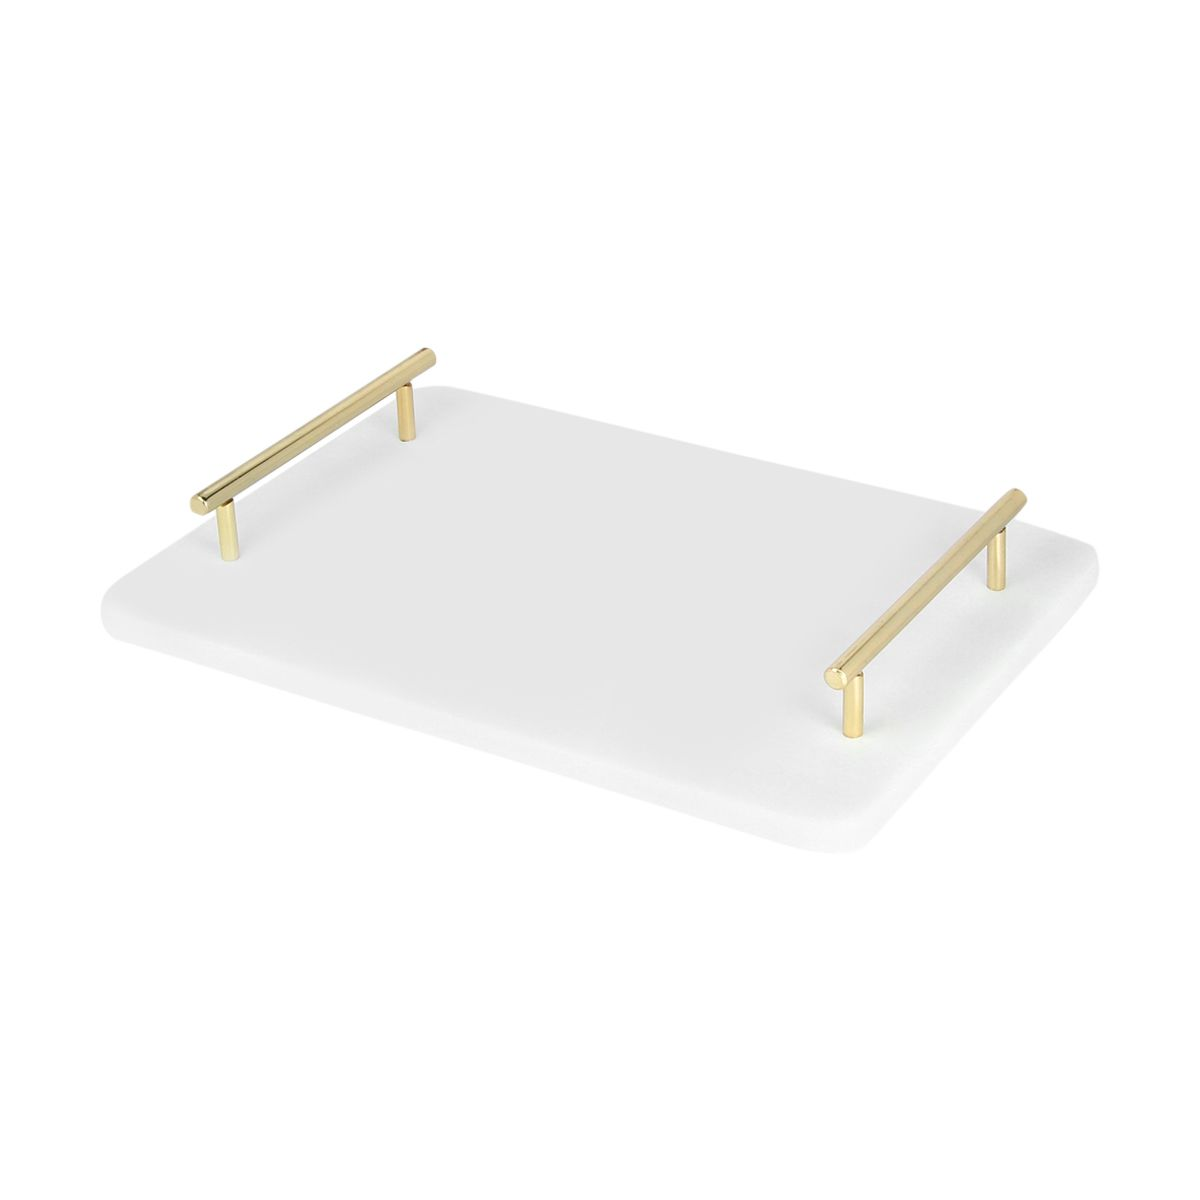 Serving tray - marble and gold  Price: $8.00  Qty: 2